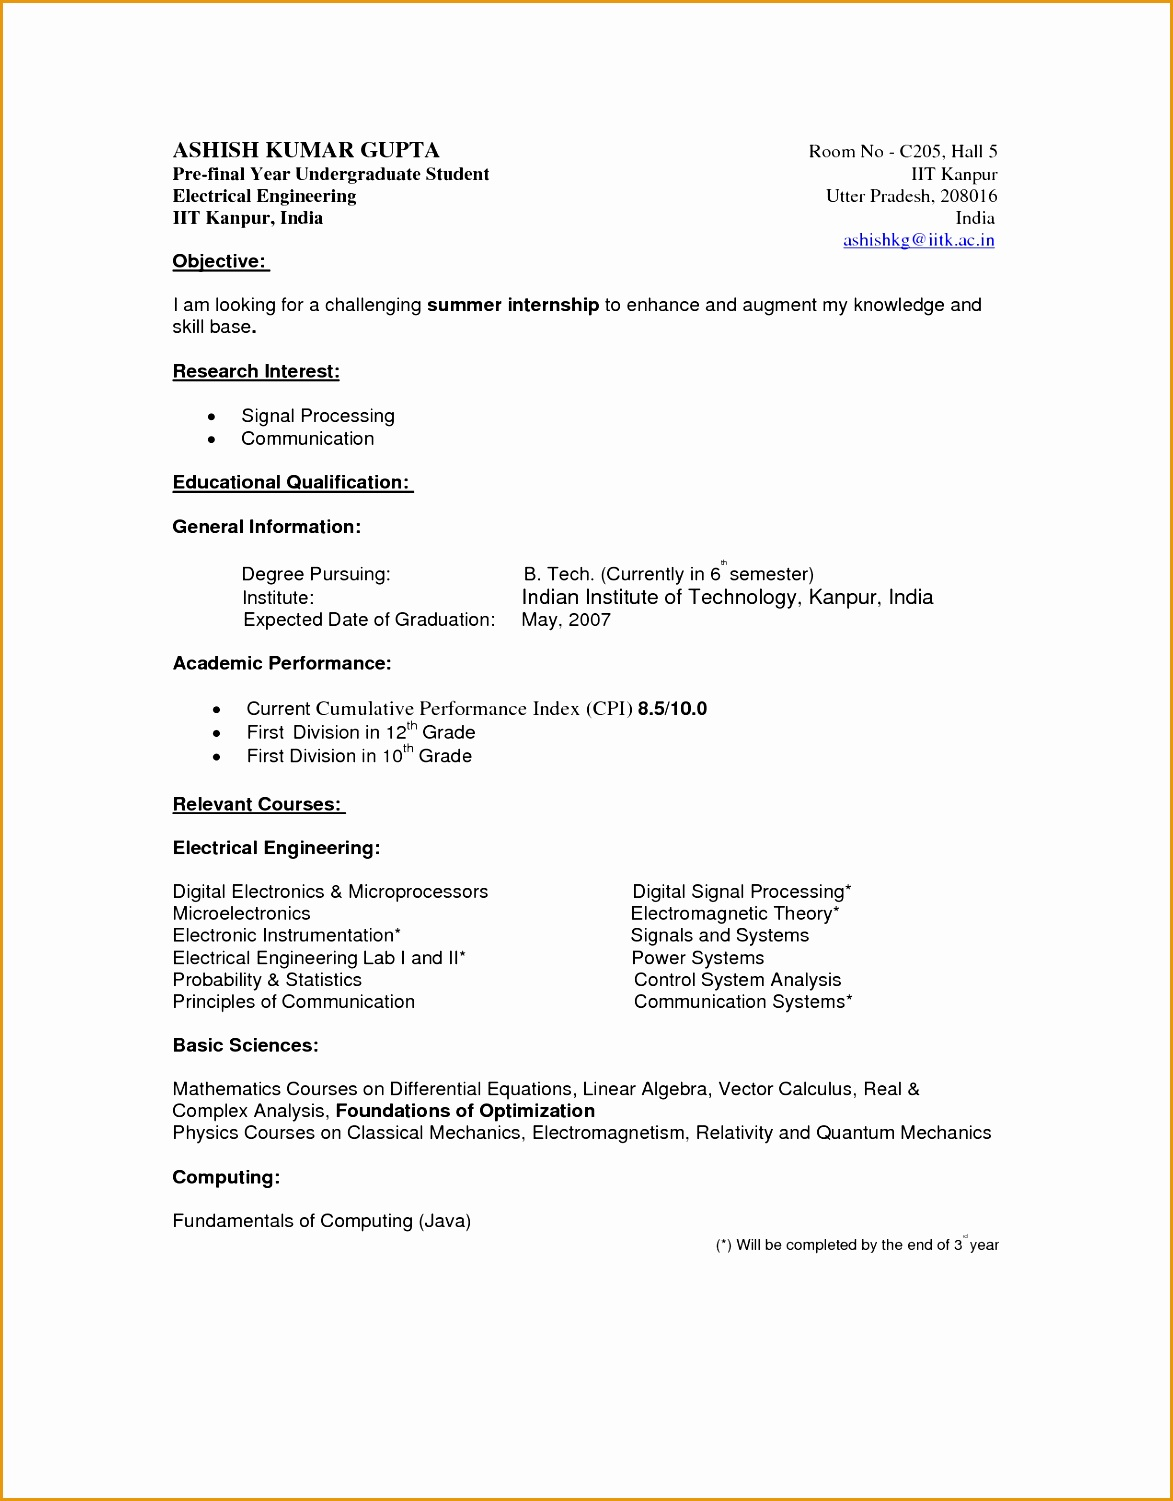 Undergraduate Student Cv Example Template within Student Curriculum Vitae Template15011173